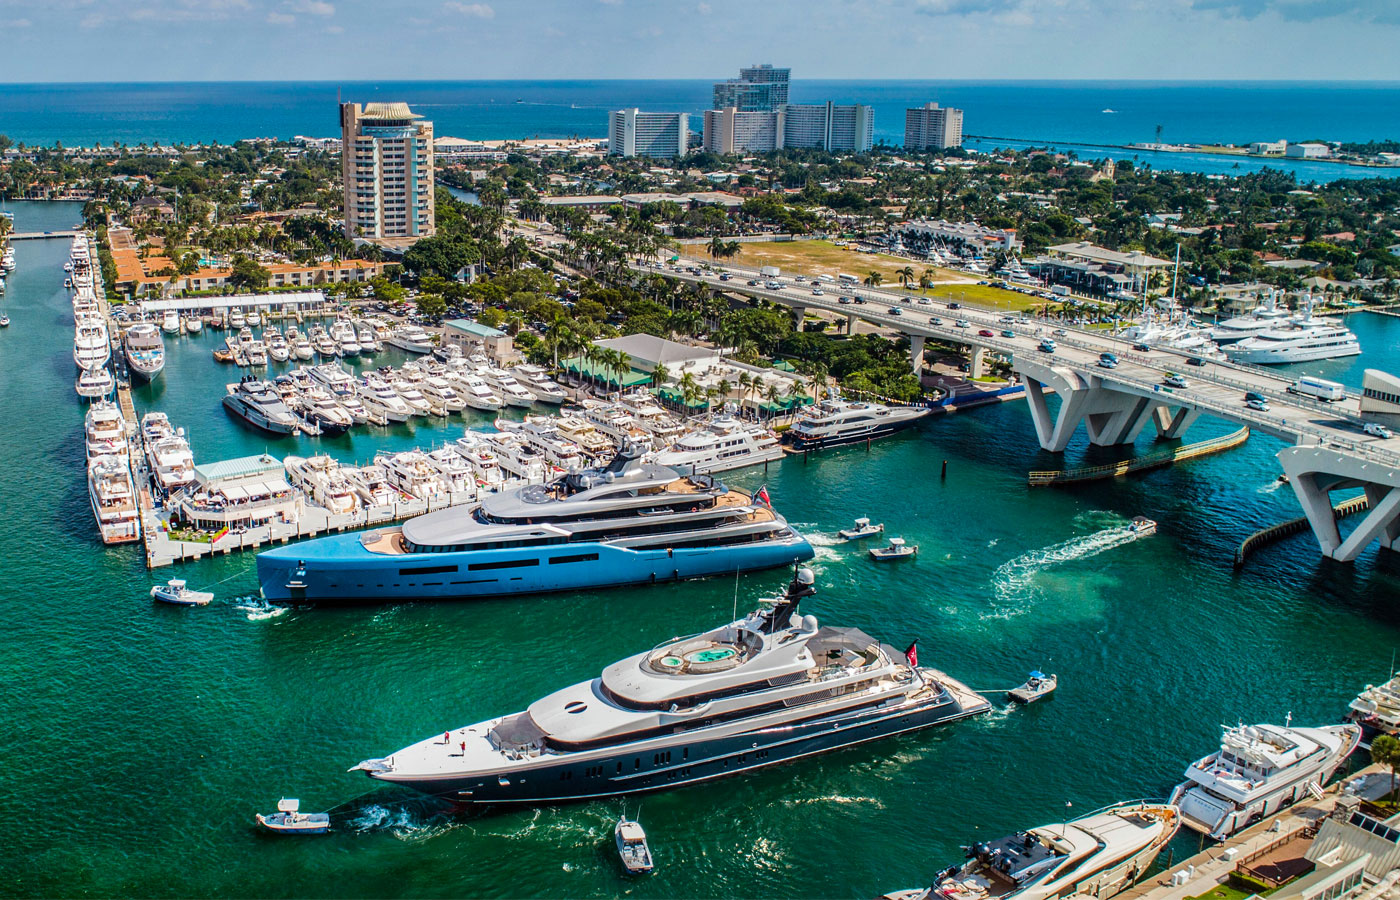 flibs 2019 FLIBS 2019: Find Out Here The Most Luxurious Pieces At Popular Booths flibs 2019 luxurious pieces popular booths